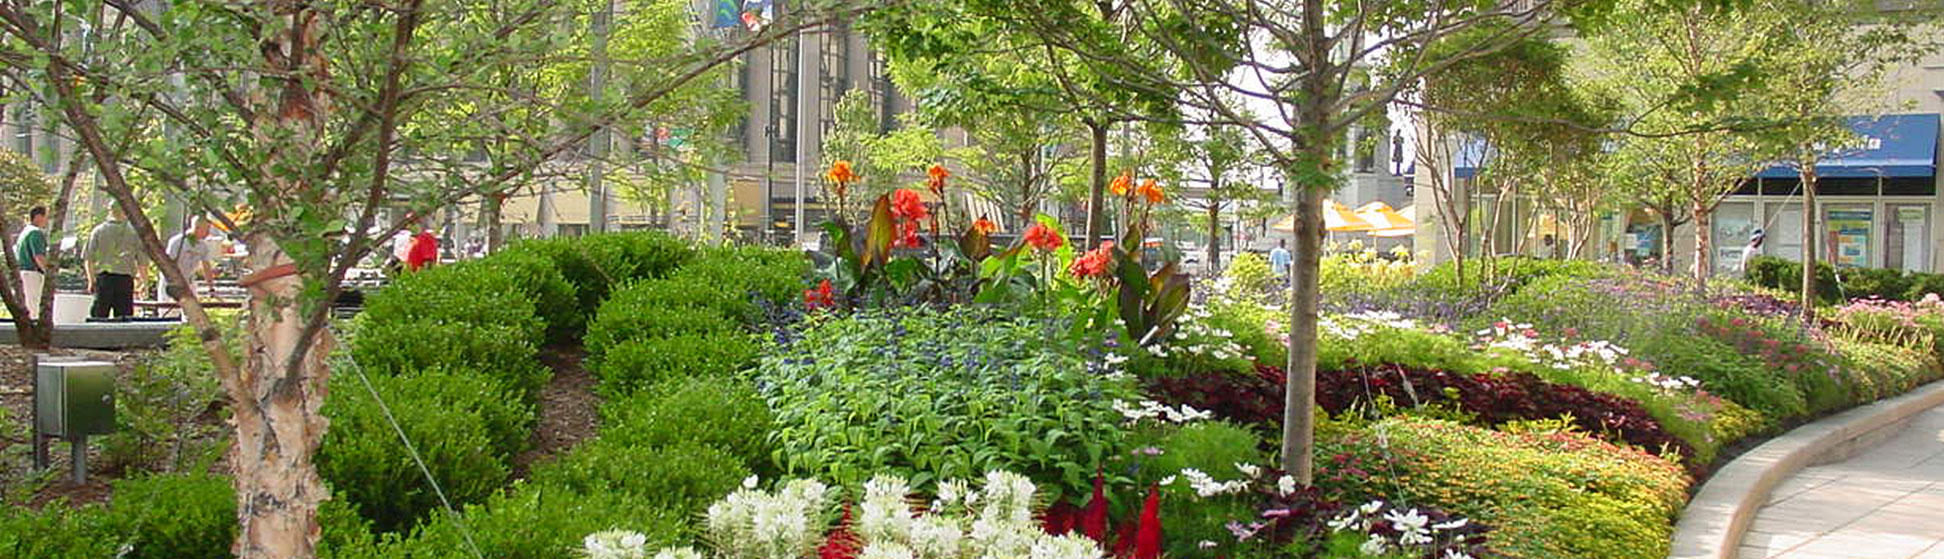 Spring plantings in the park (image from Campus Martius Park)